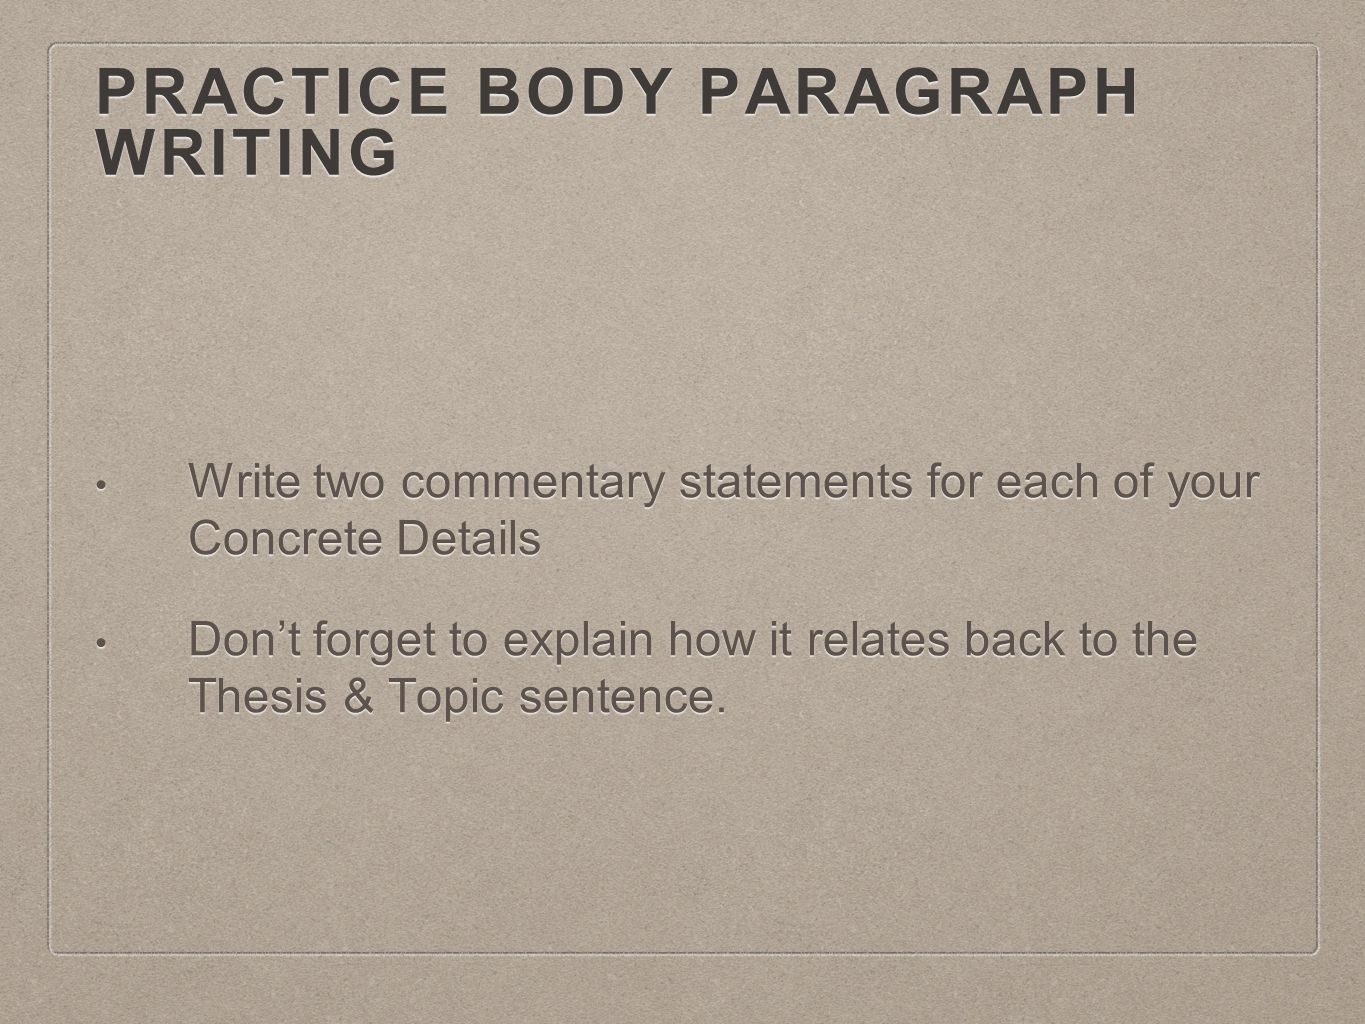 Practice Body Paragraph Writing